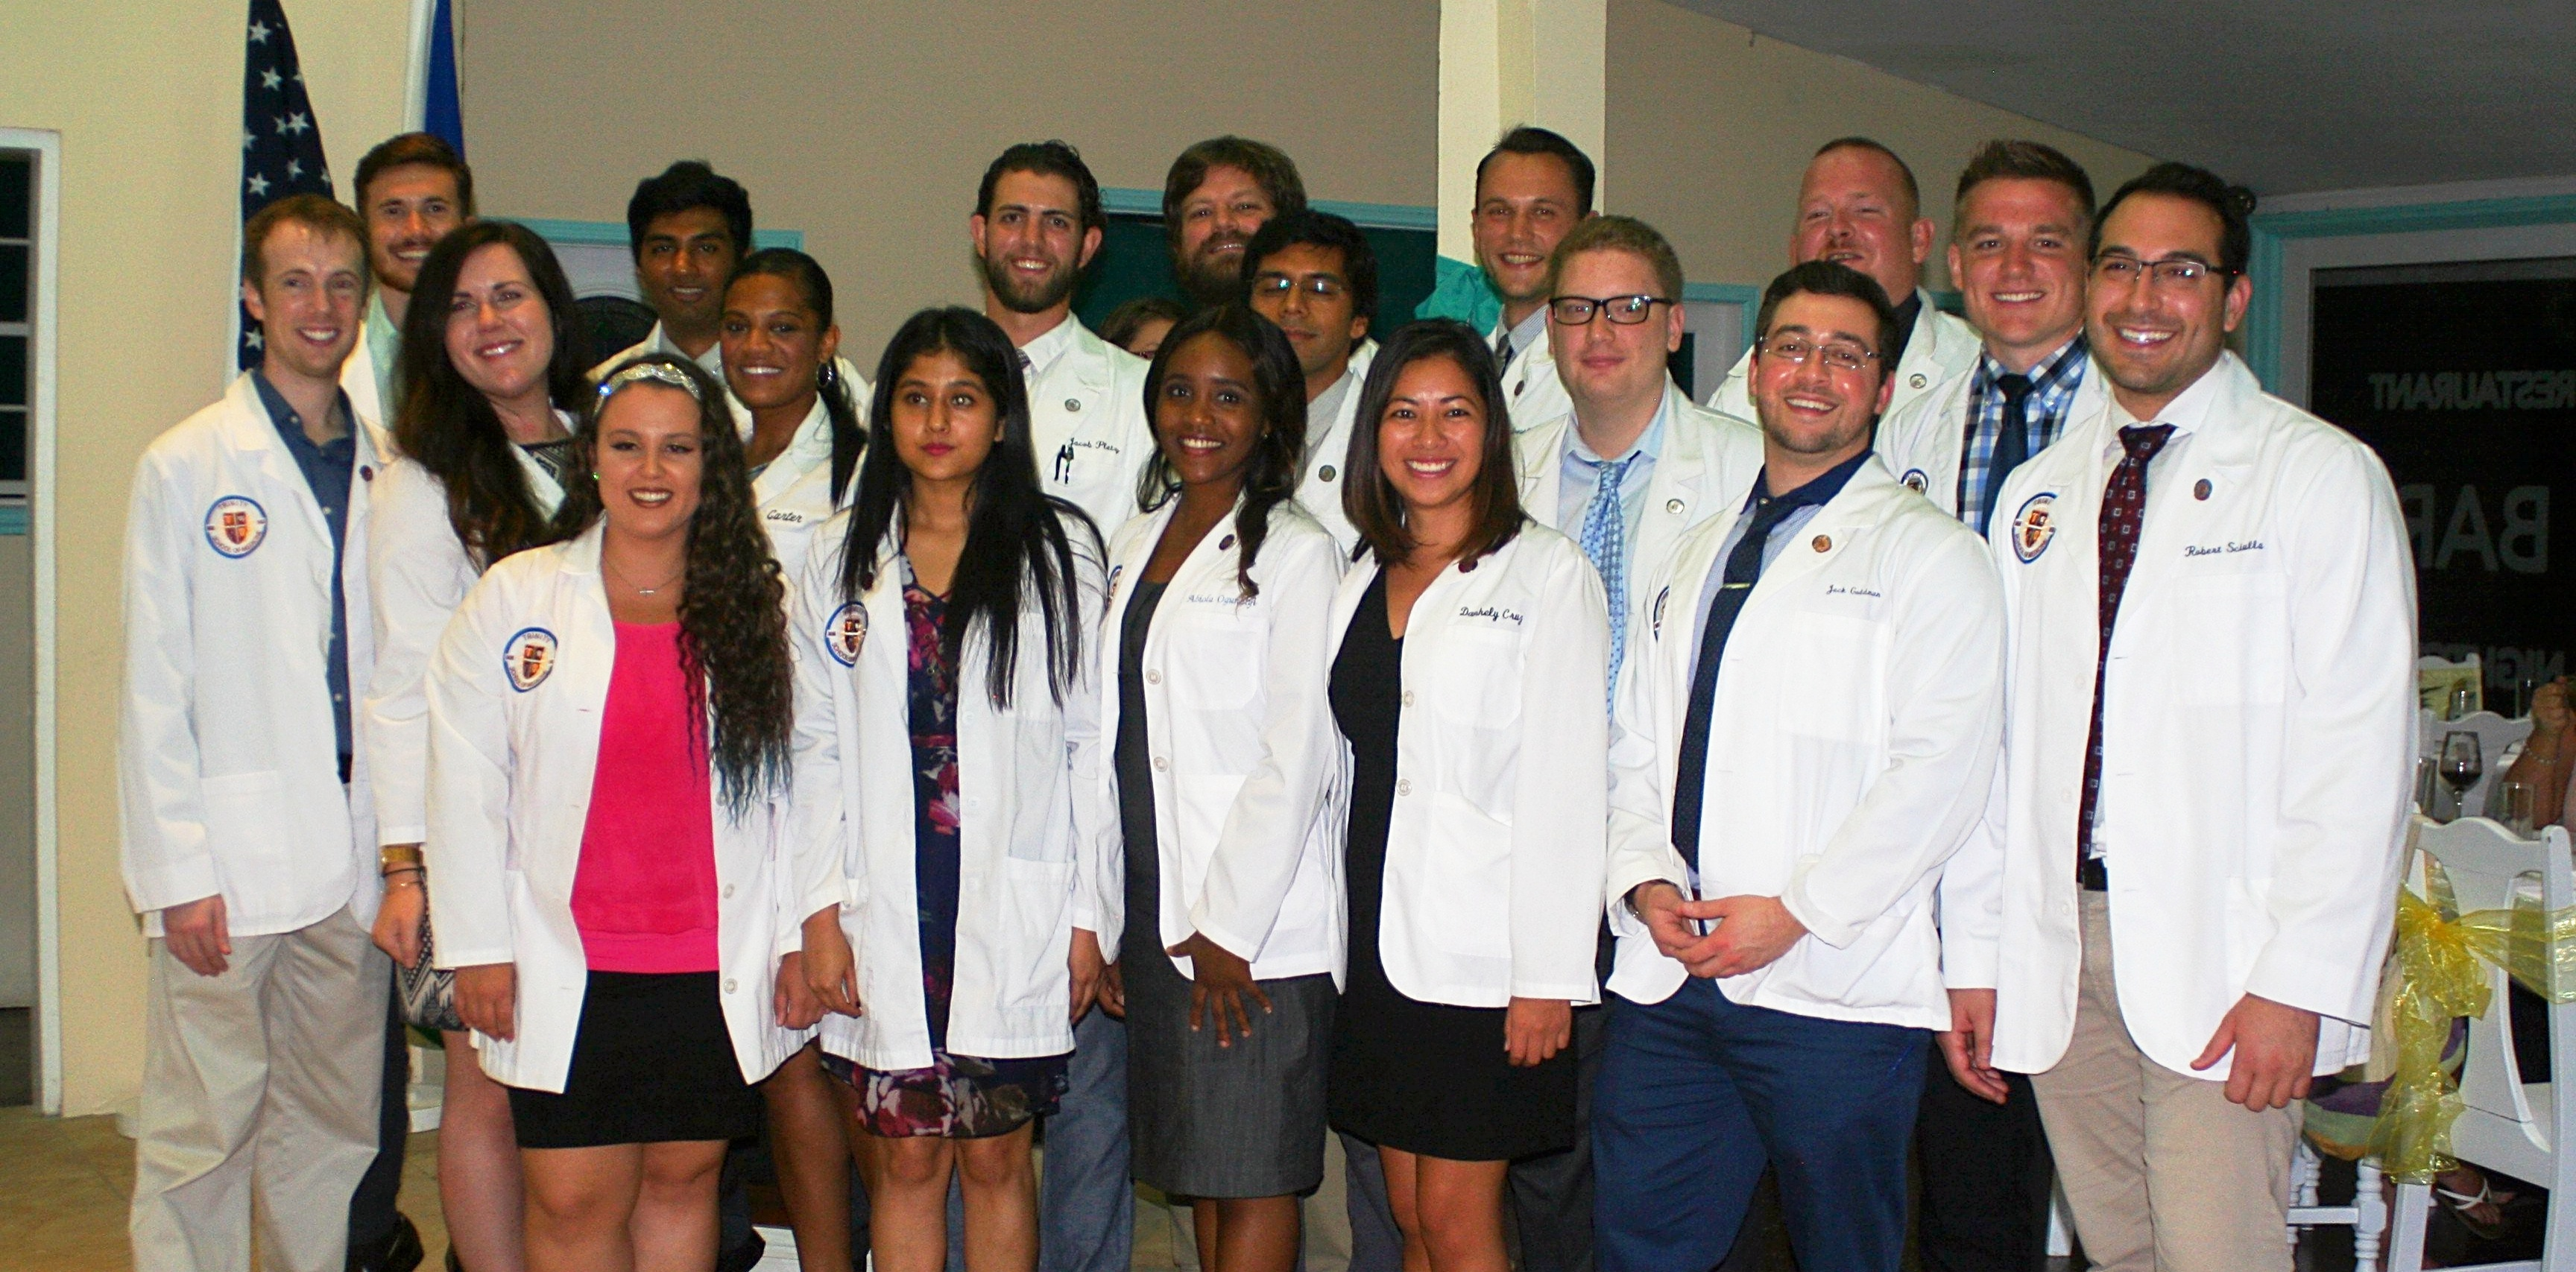 Trinity students celebrating the transition to clerkships